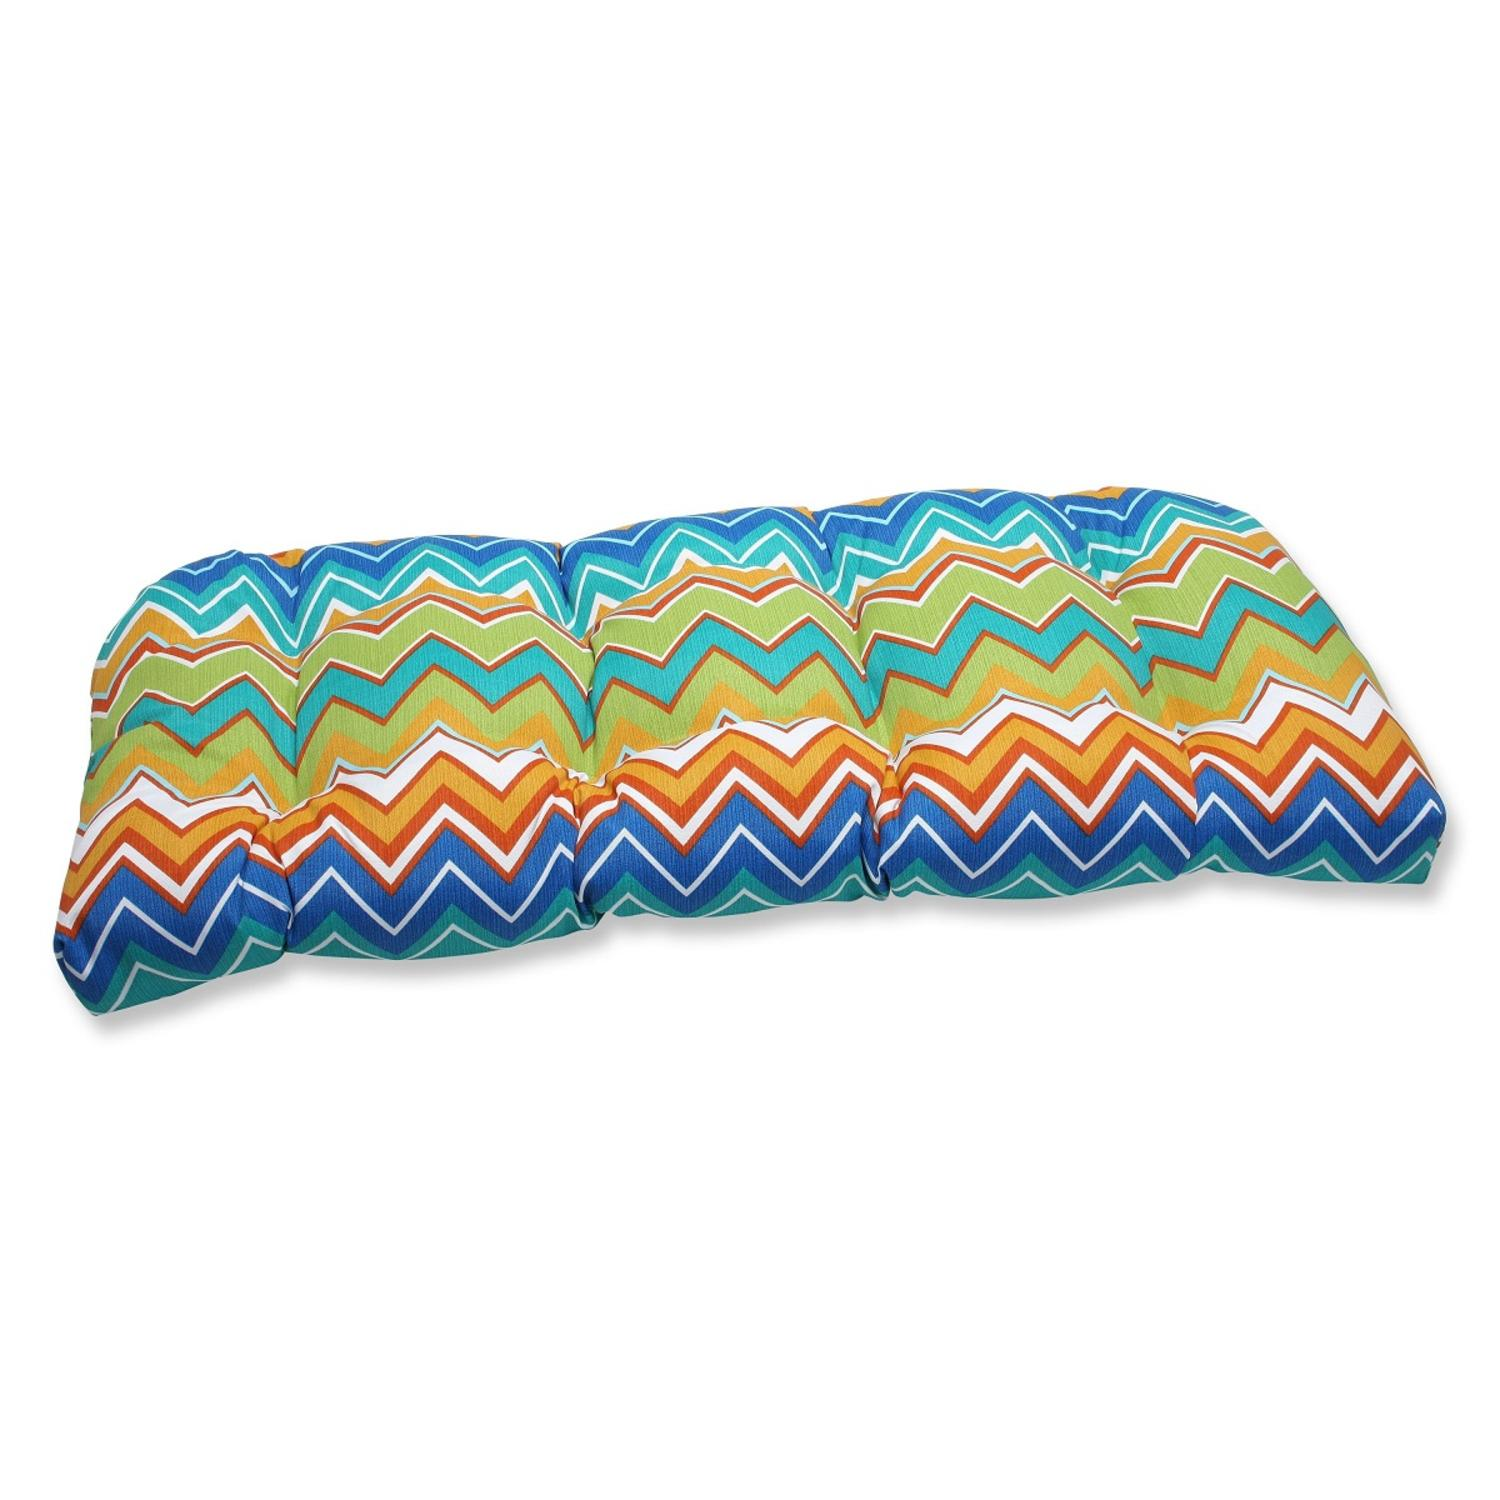 "44"" Chevron Surtido Blue and Orange Outdoor Patio Tufted Wicker Loveseat Cushion"